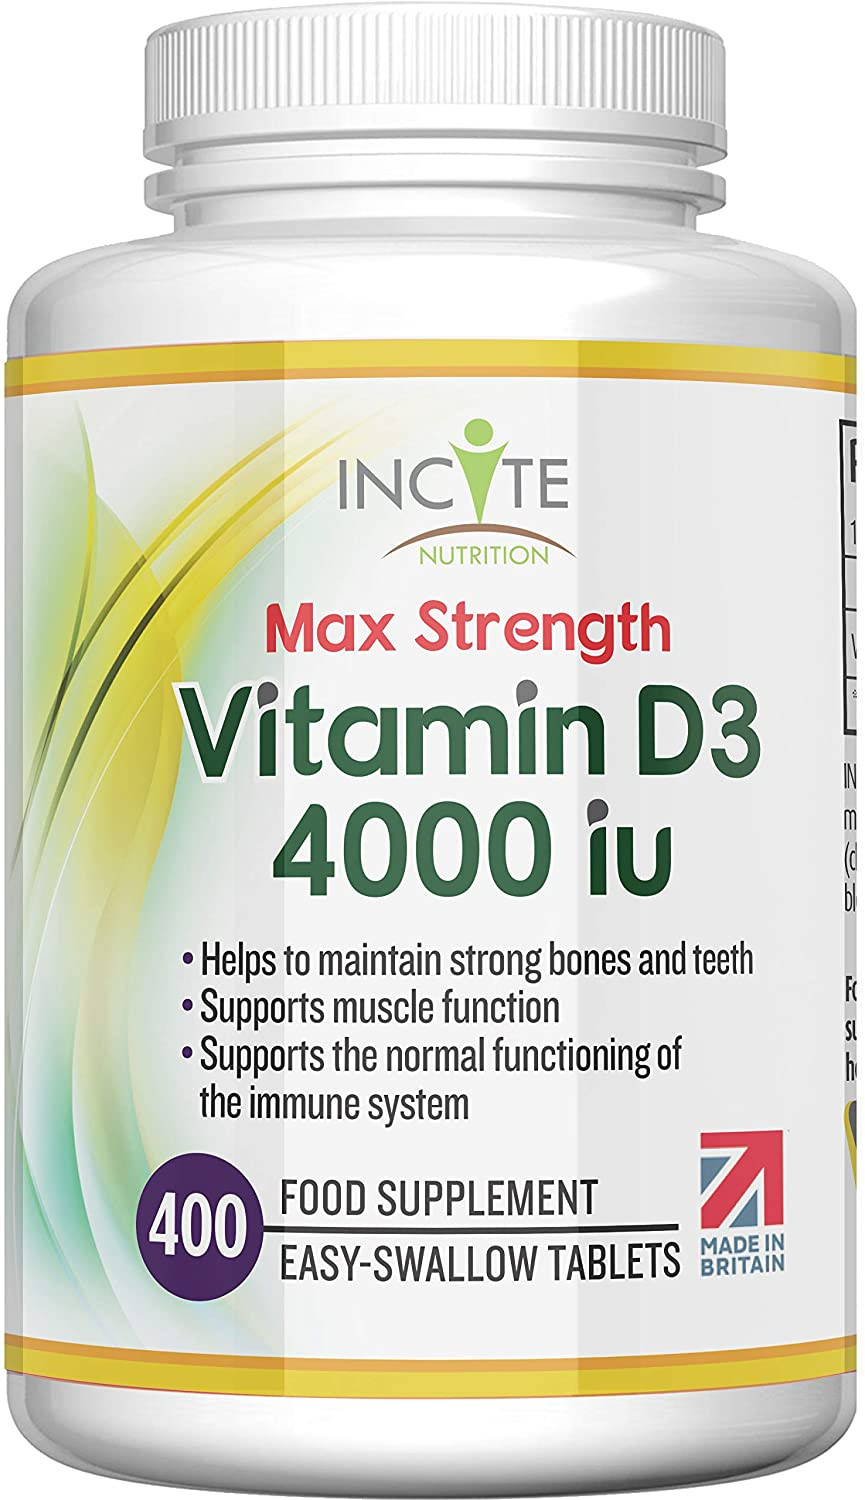 This is an image of the best selling Vitamin D3 supplement on the market right now!!